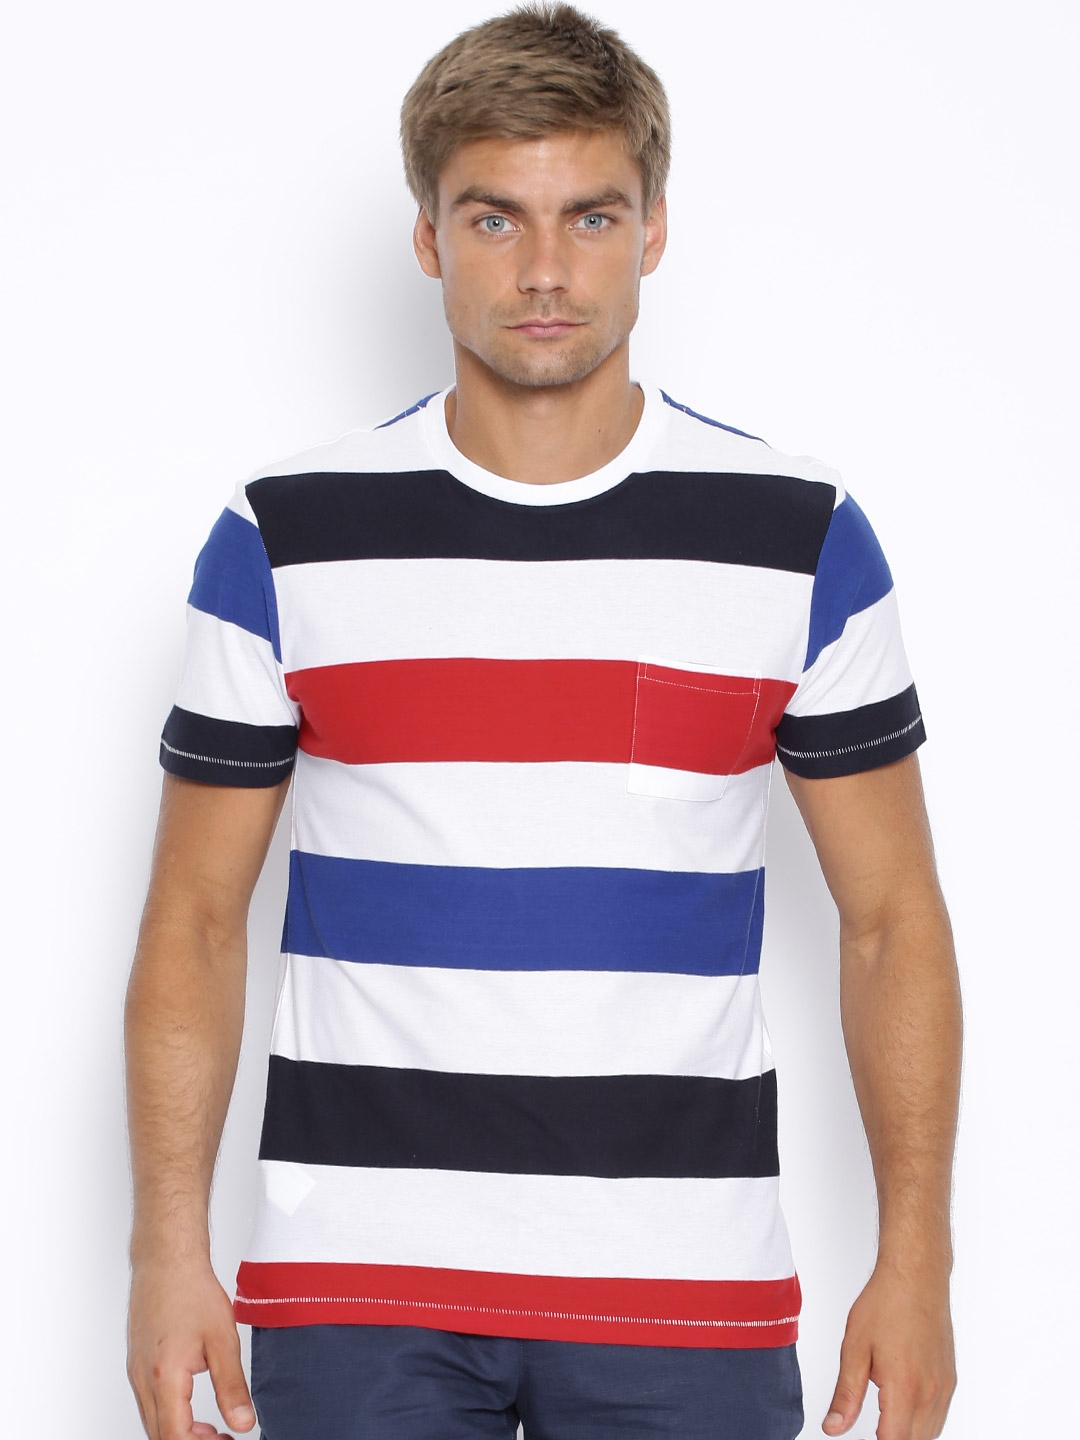 9ace99743c Buy H.E. By Mango White   Navy Striped T Shirt - Tshirts for Men ...